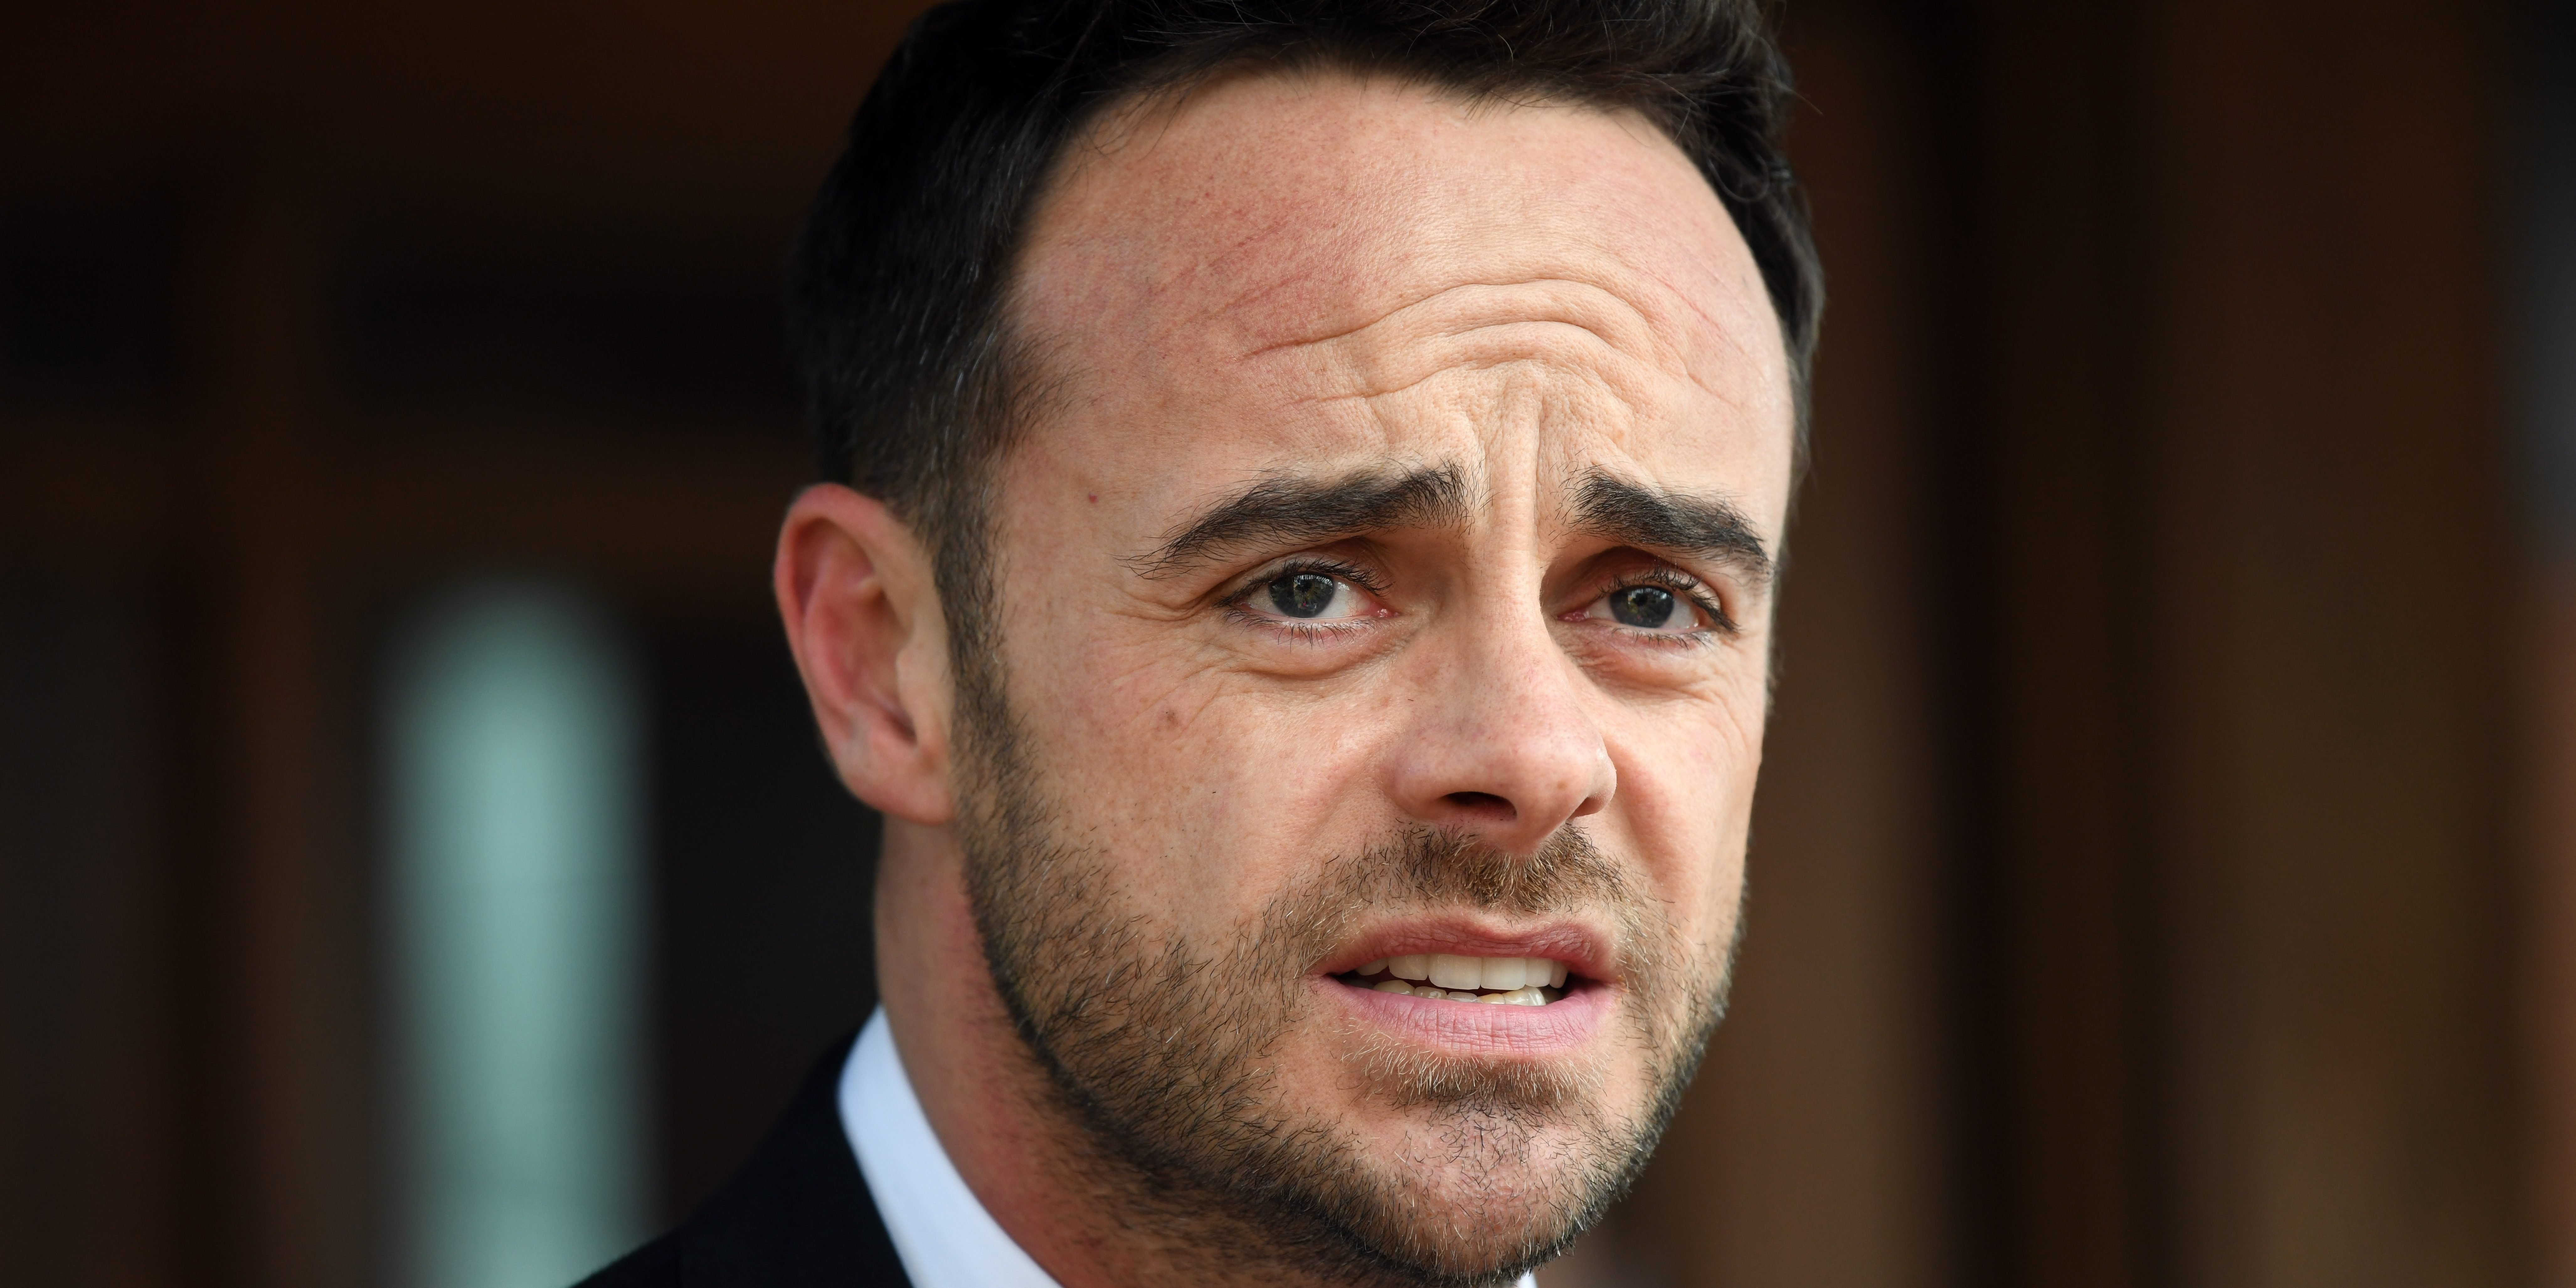 Ant McPartlin makes social media return as he prepares for TV comeback next month